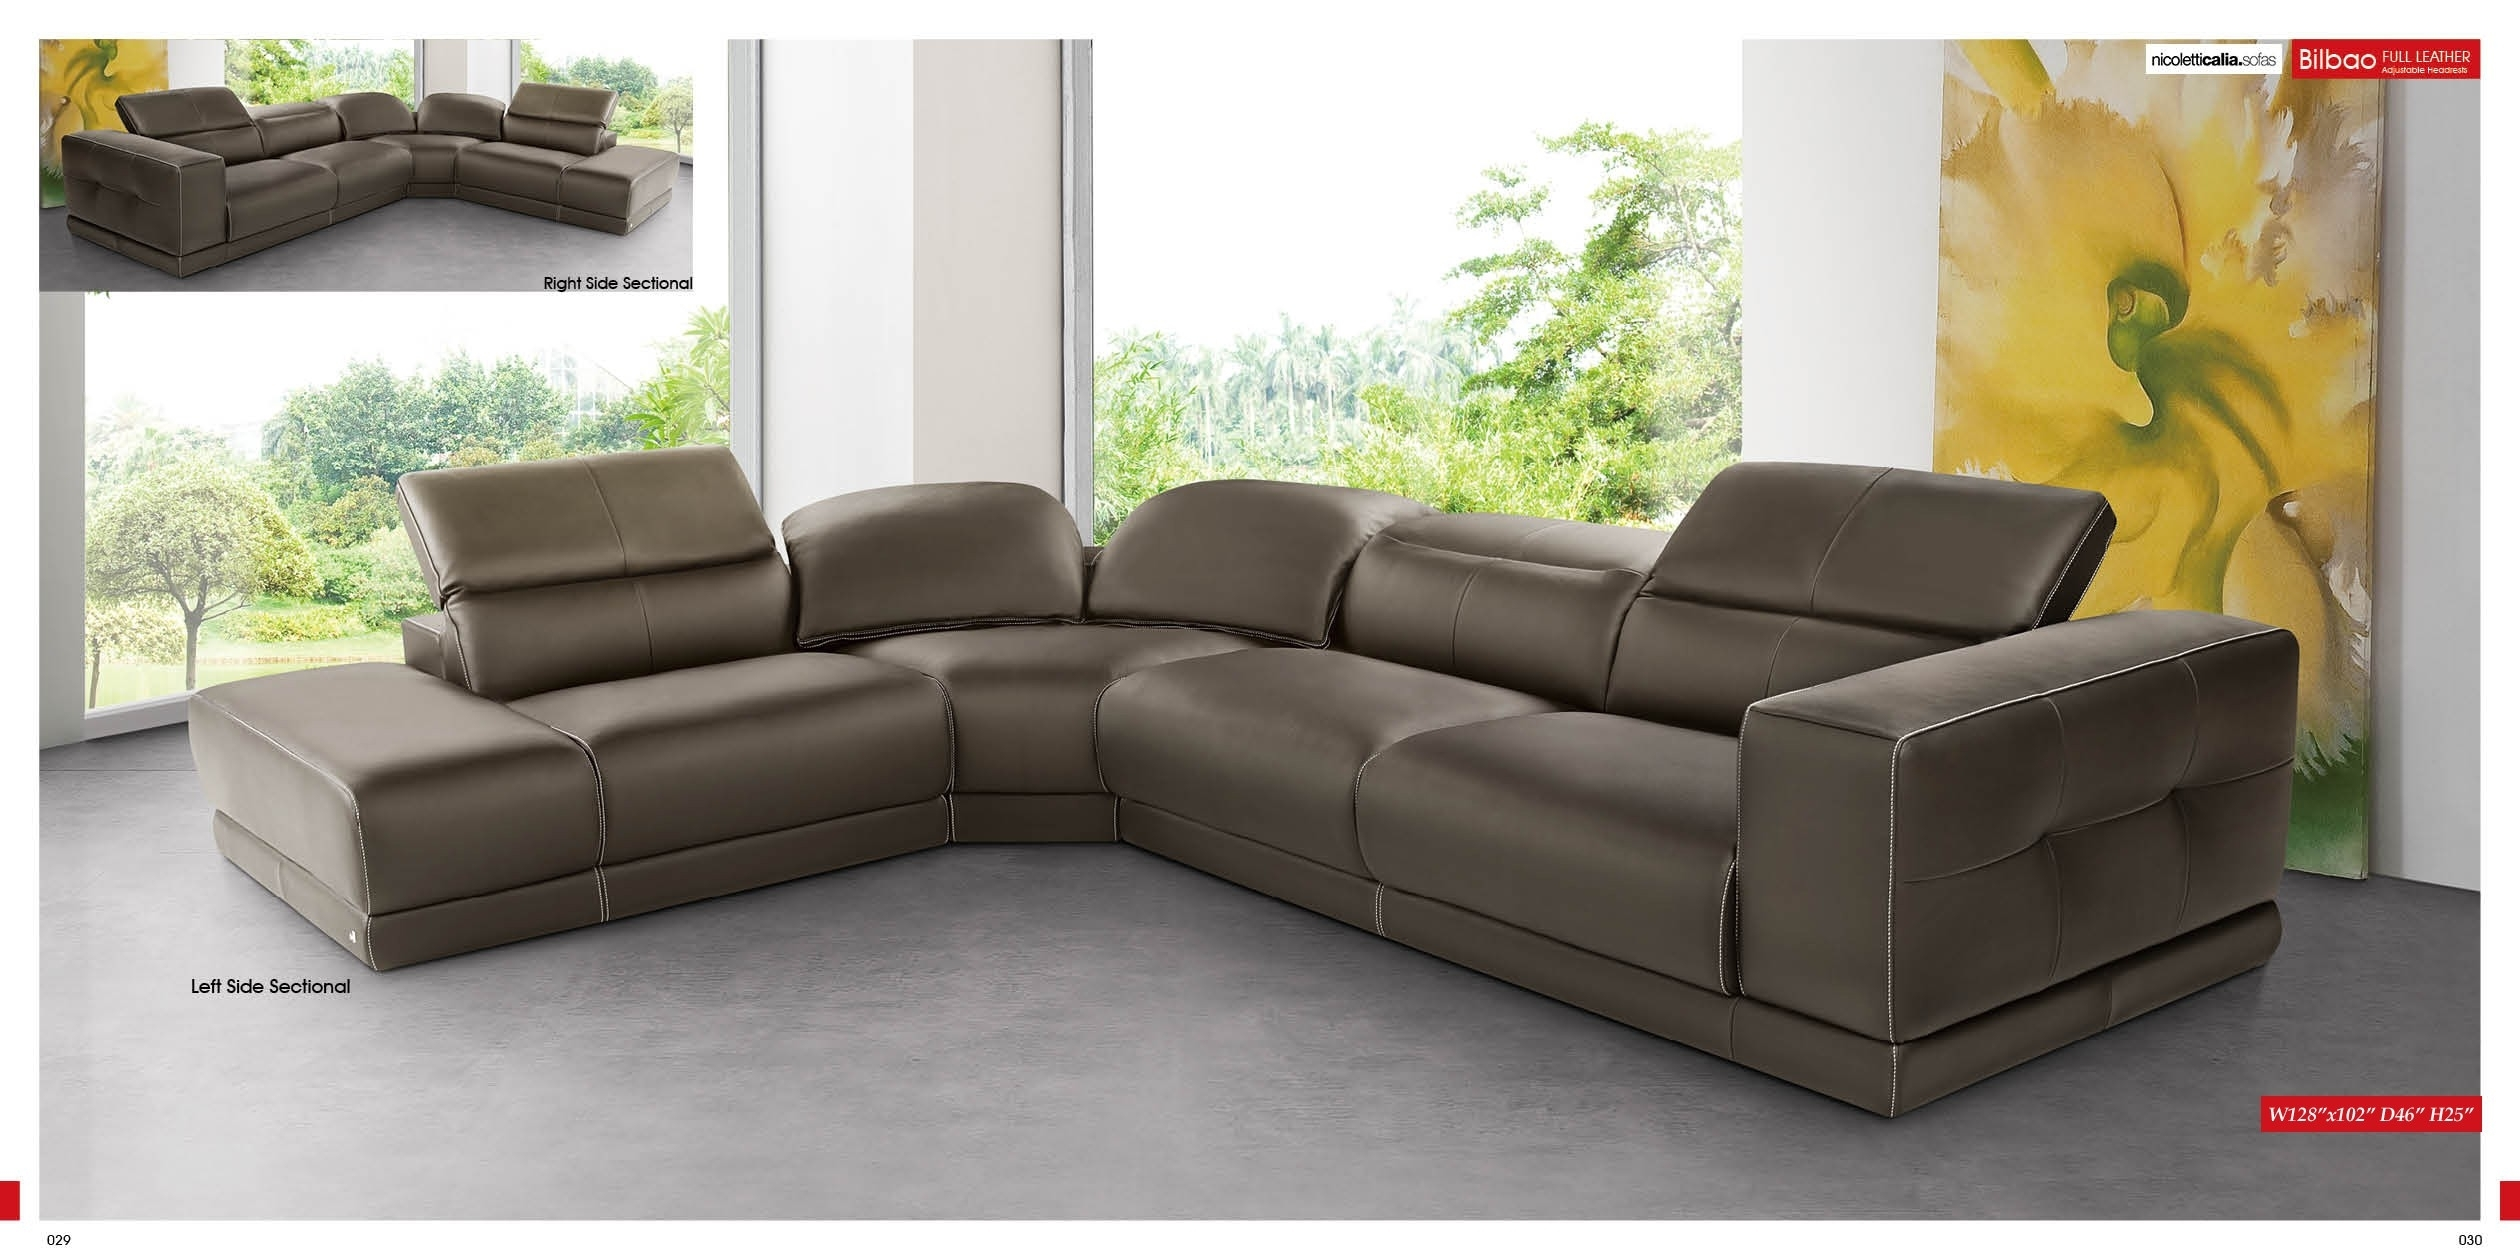 Furniture : Sectional Sofa 120 Sectional Couch Guelph Recliner 3 Inside 110X110 Sectional Sofas (Image 9 of 10)